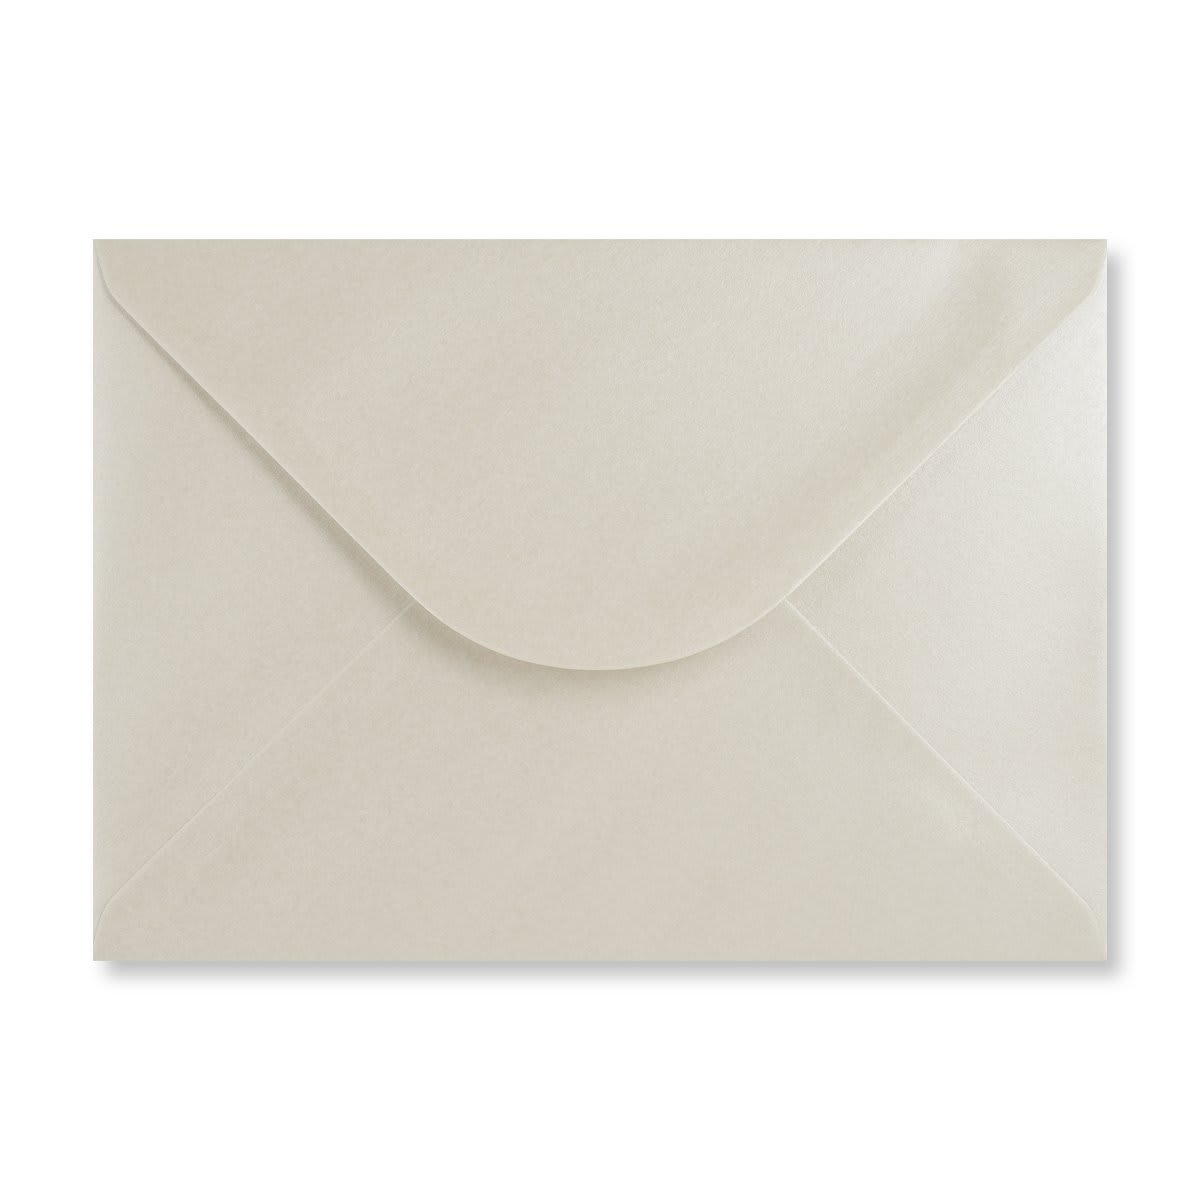 C5 PEARL OYSTER WHITE ENVELOPE